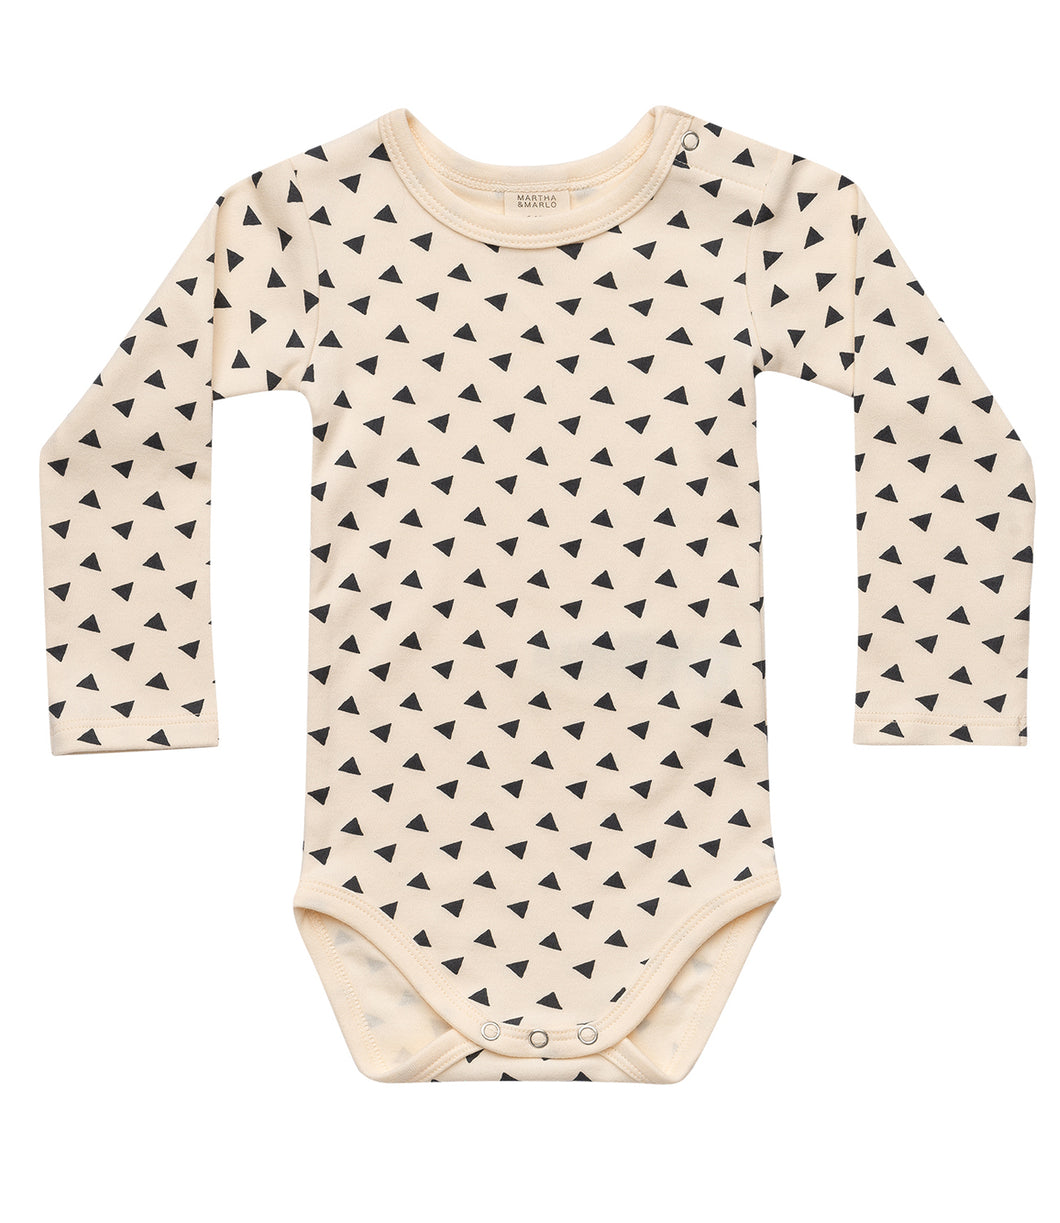 Martha & Marlo Baby Long Sleeve Bodysuit Sketch Print Cream